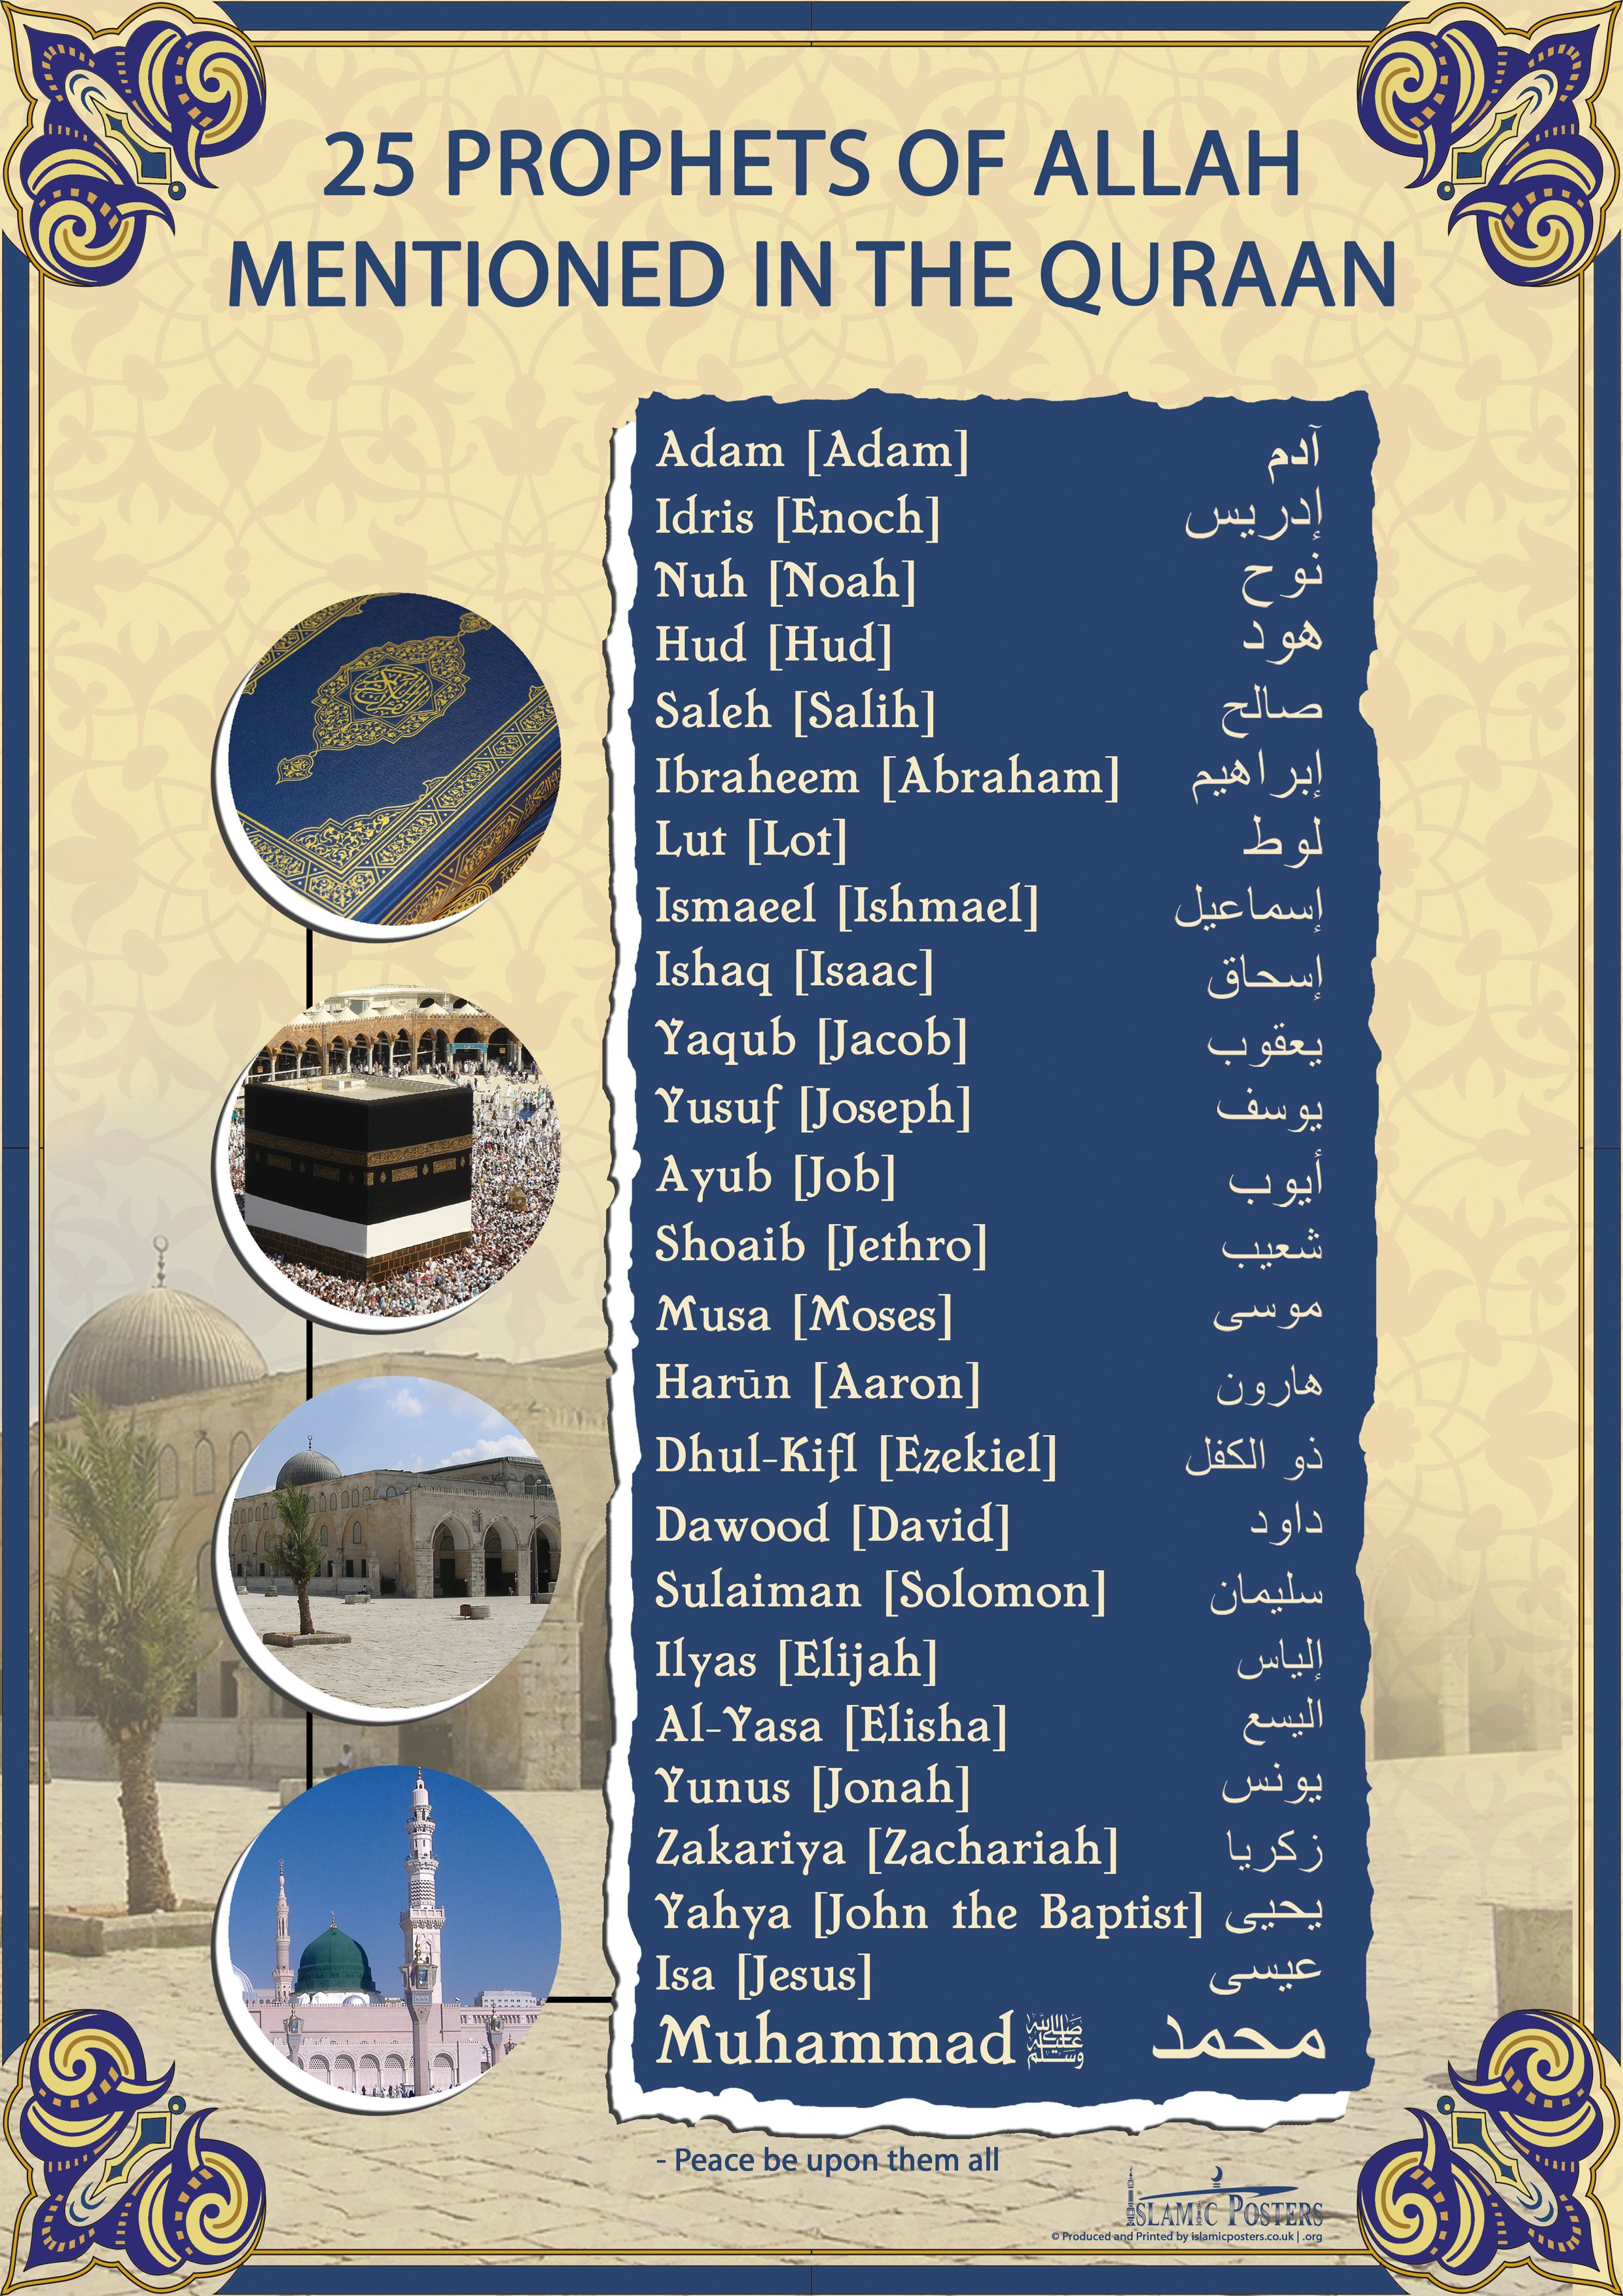 Download Islamic Posters Prayer Guidance Alcohol Music Drugs